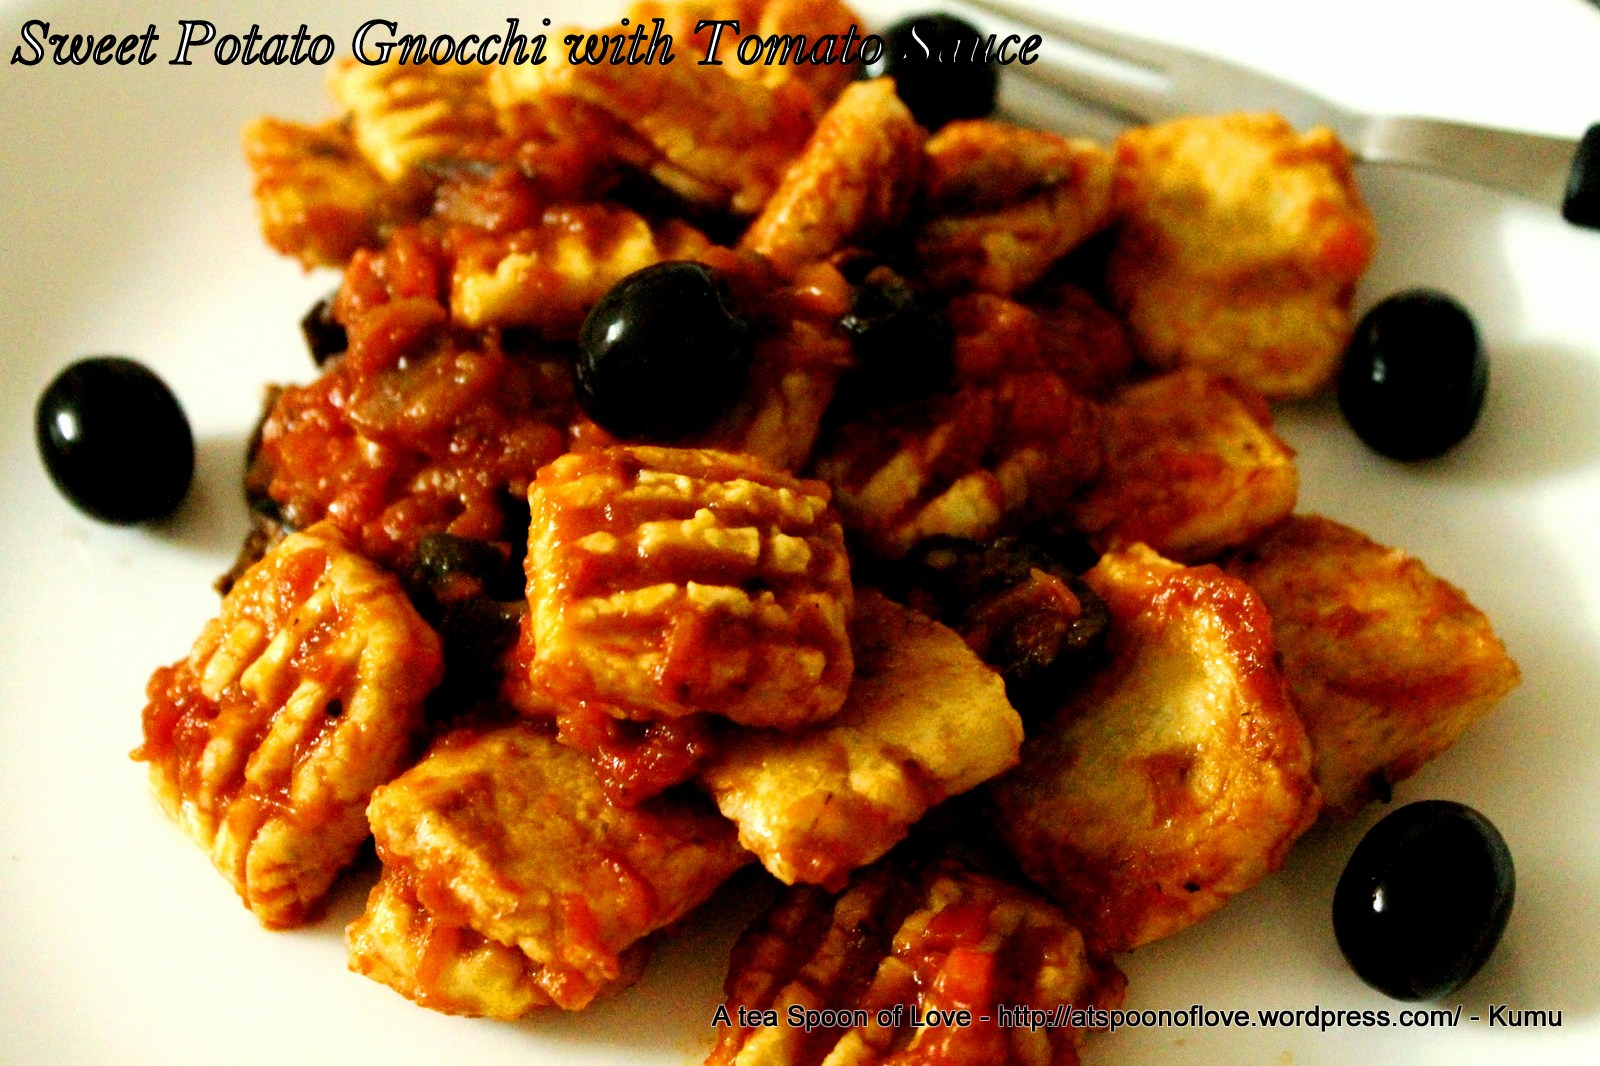 Paleo Sweet Potato Gnocchi with Tomato Sauce